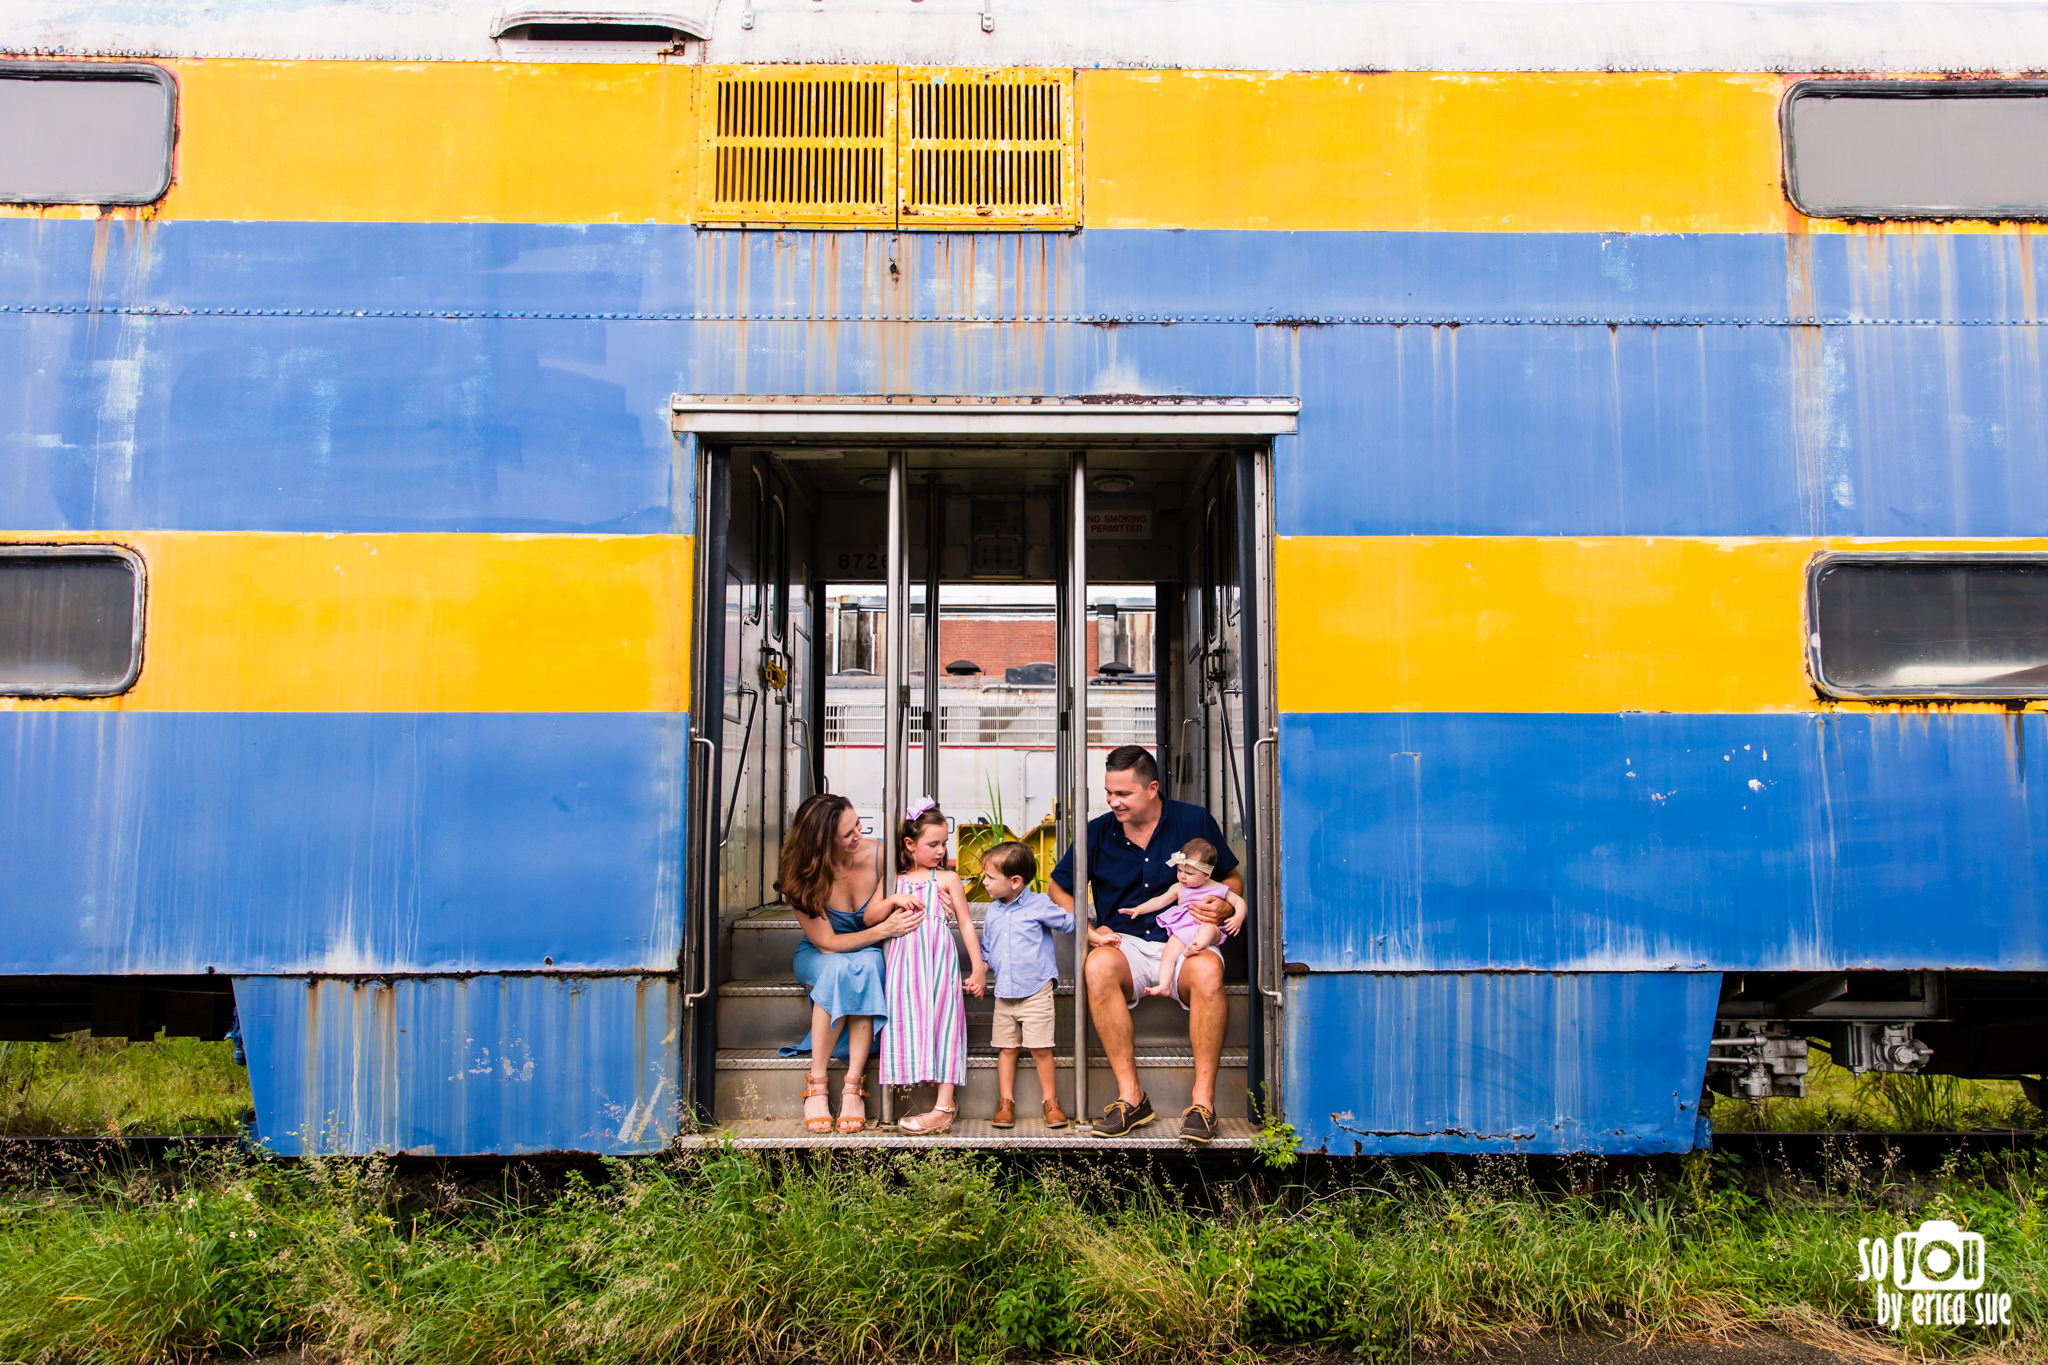 so-you-by-erica-sue-gold-coast-railroad-museum-miami-family-photo-shoot-session-7376.JPG